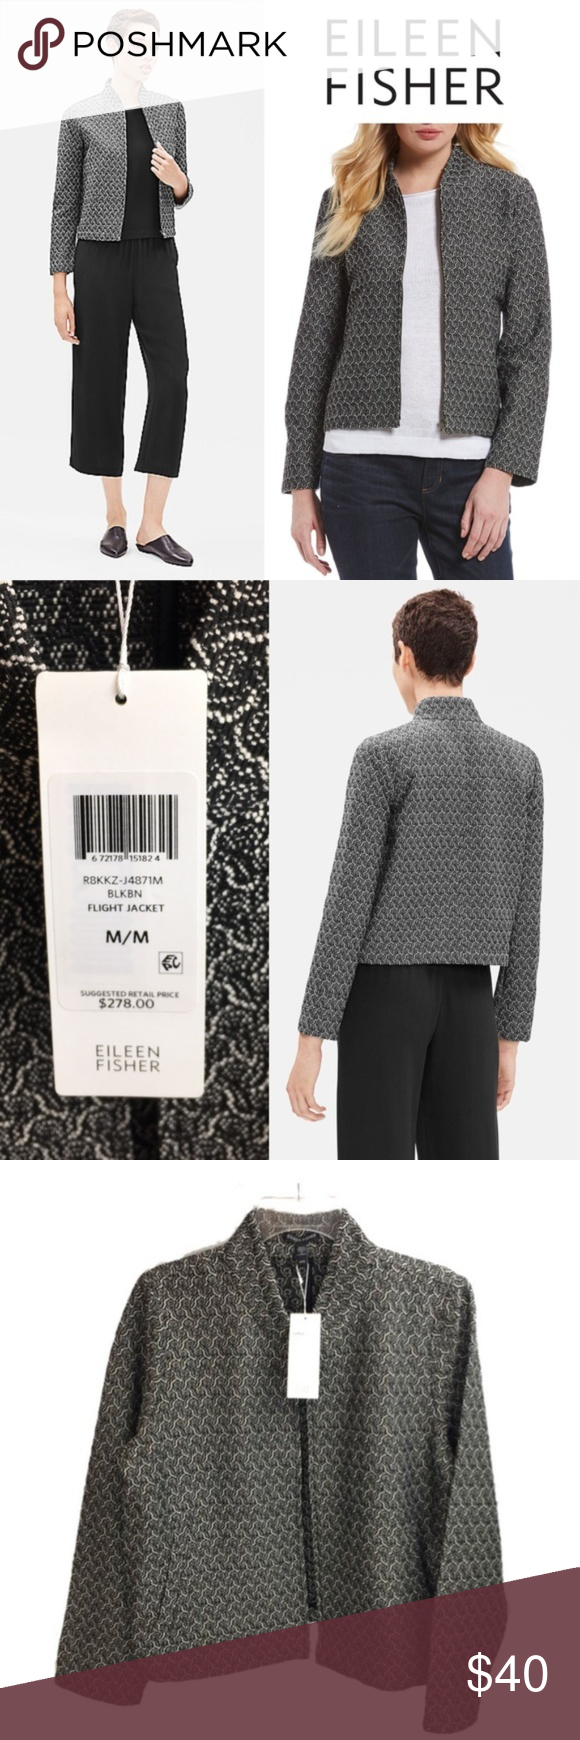 🎁🎄 NWT Eileen Fisher Flight Jacket Size M New with Tags Eileen Fisher Recy…